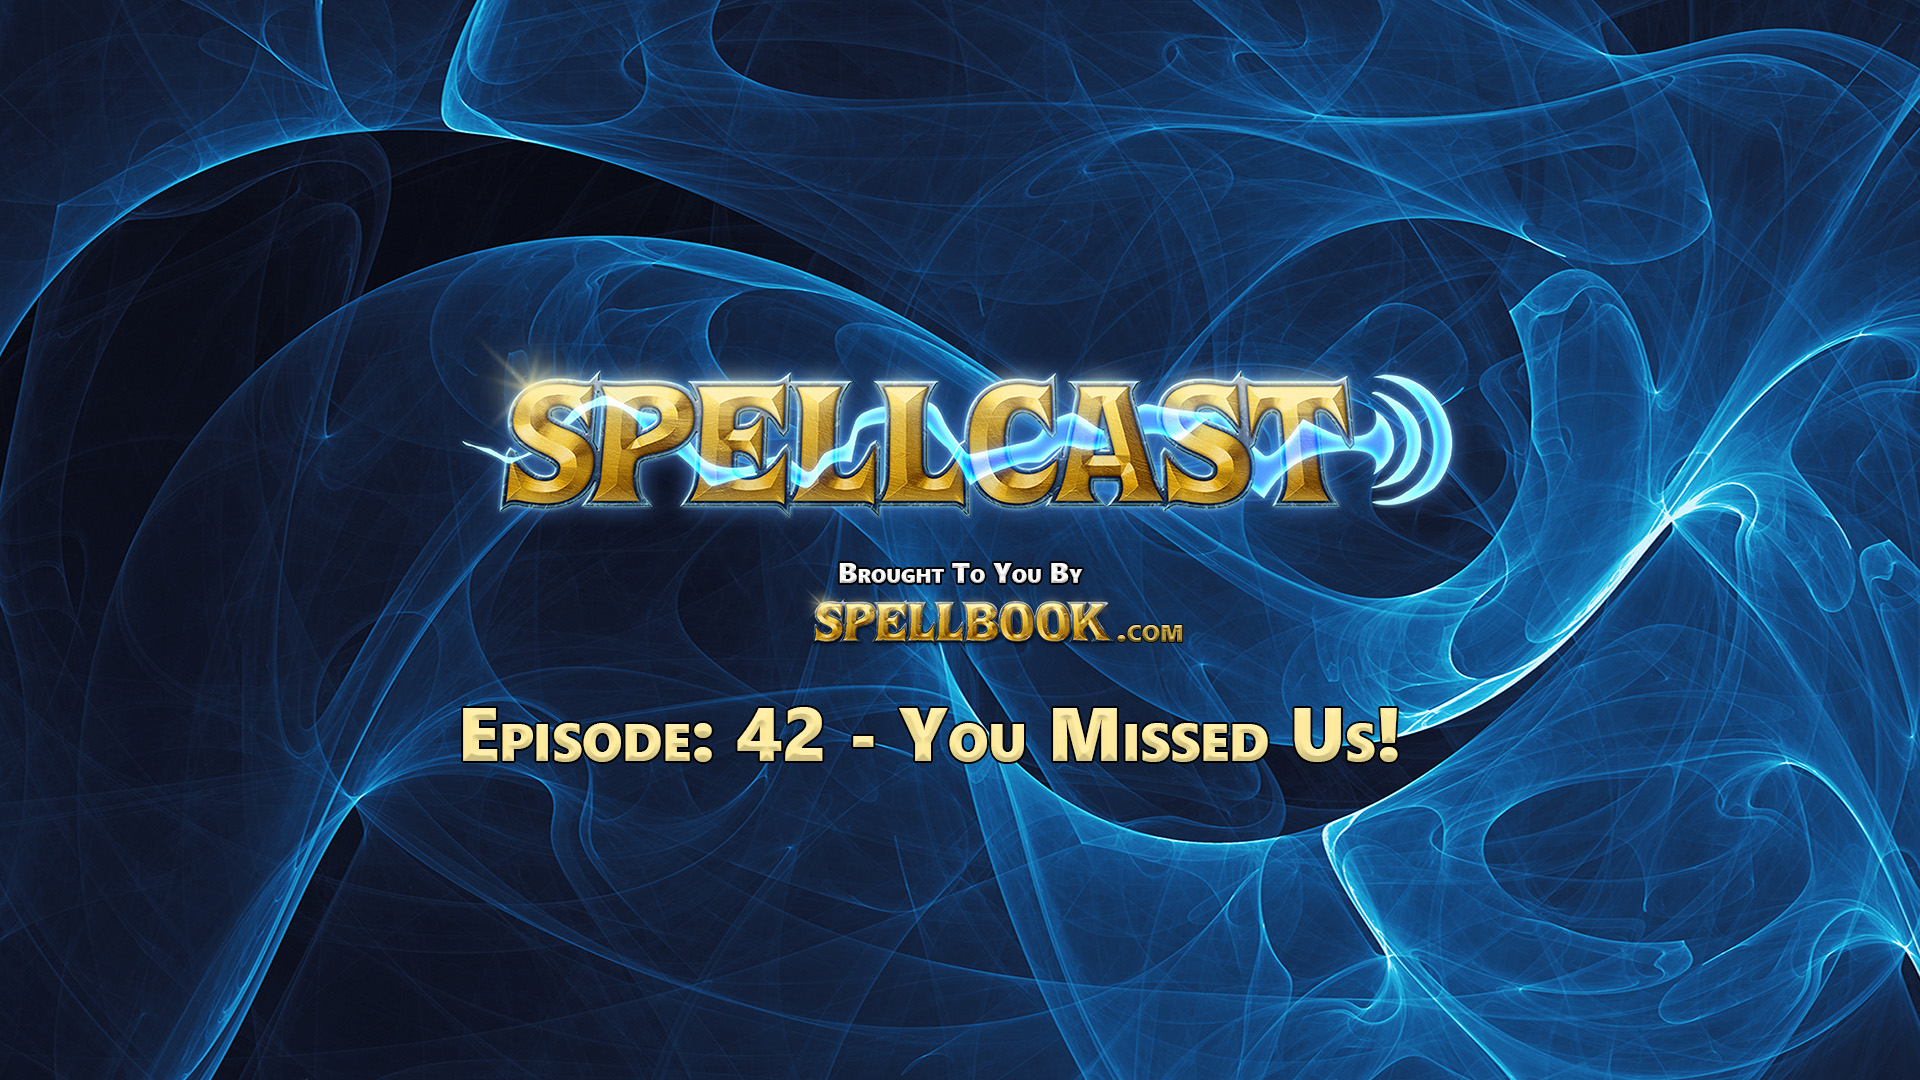 Spellcast Episode 42 - You Missed Us!